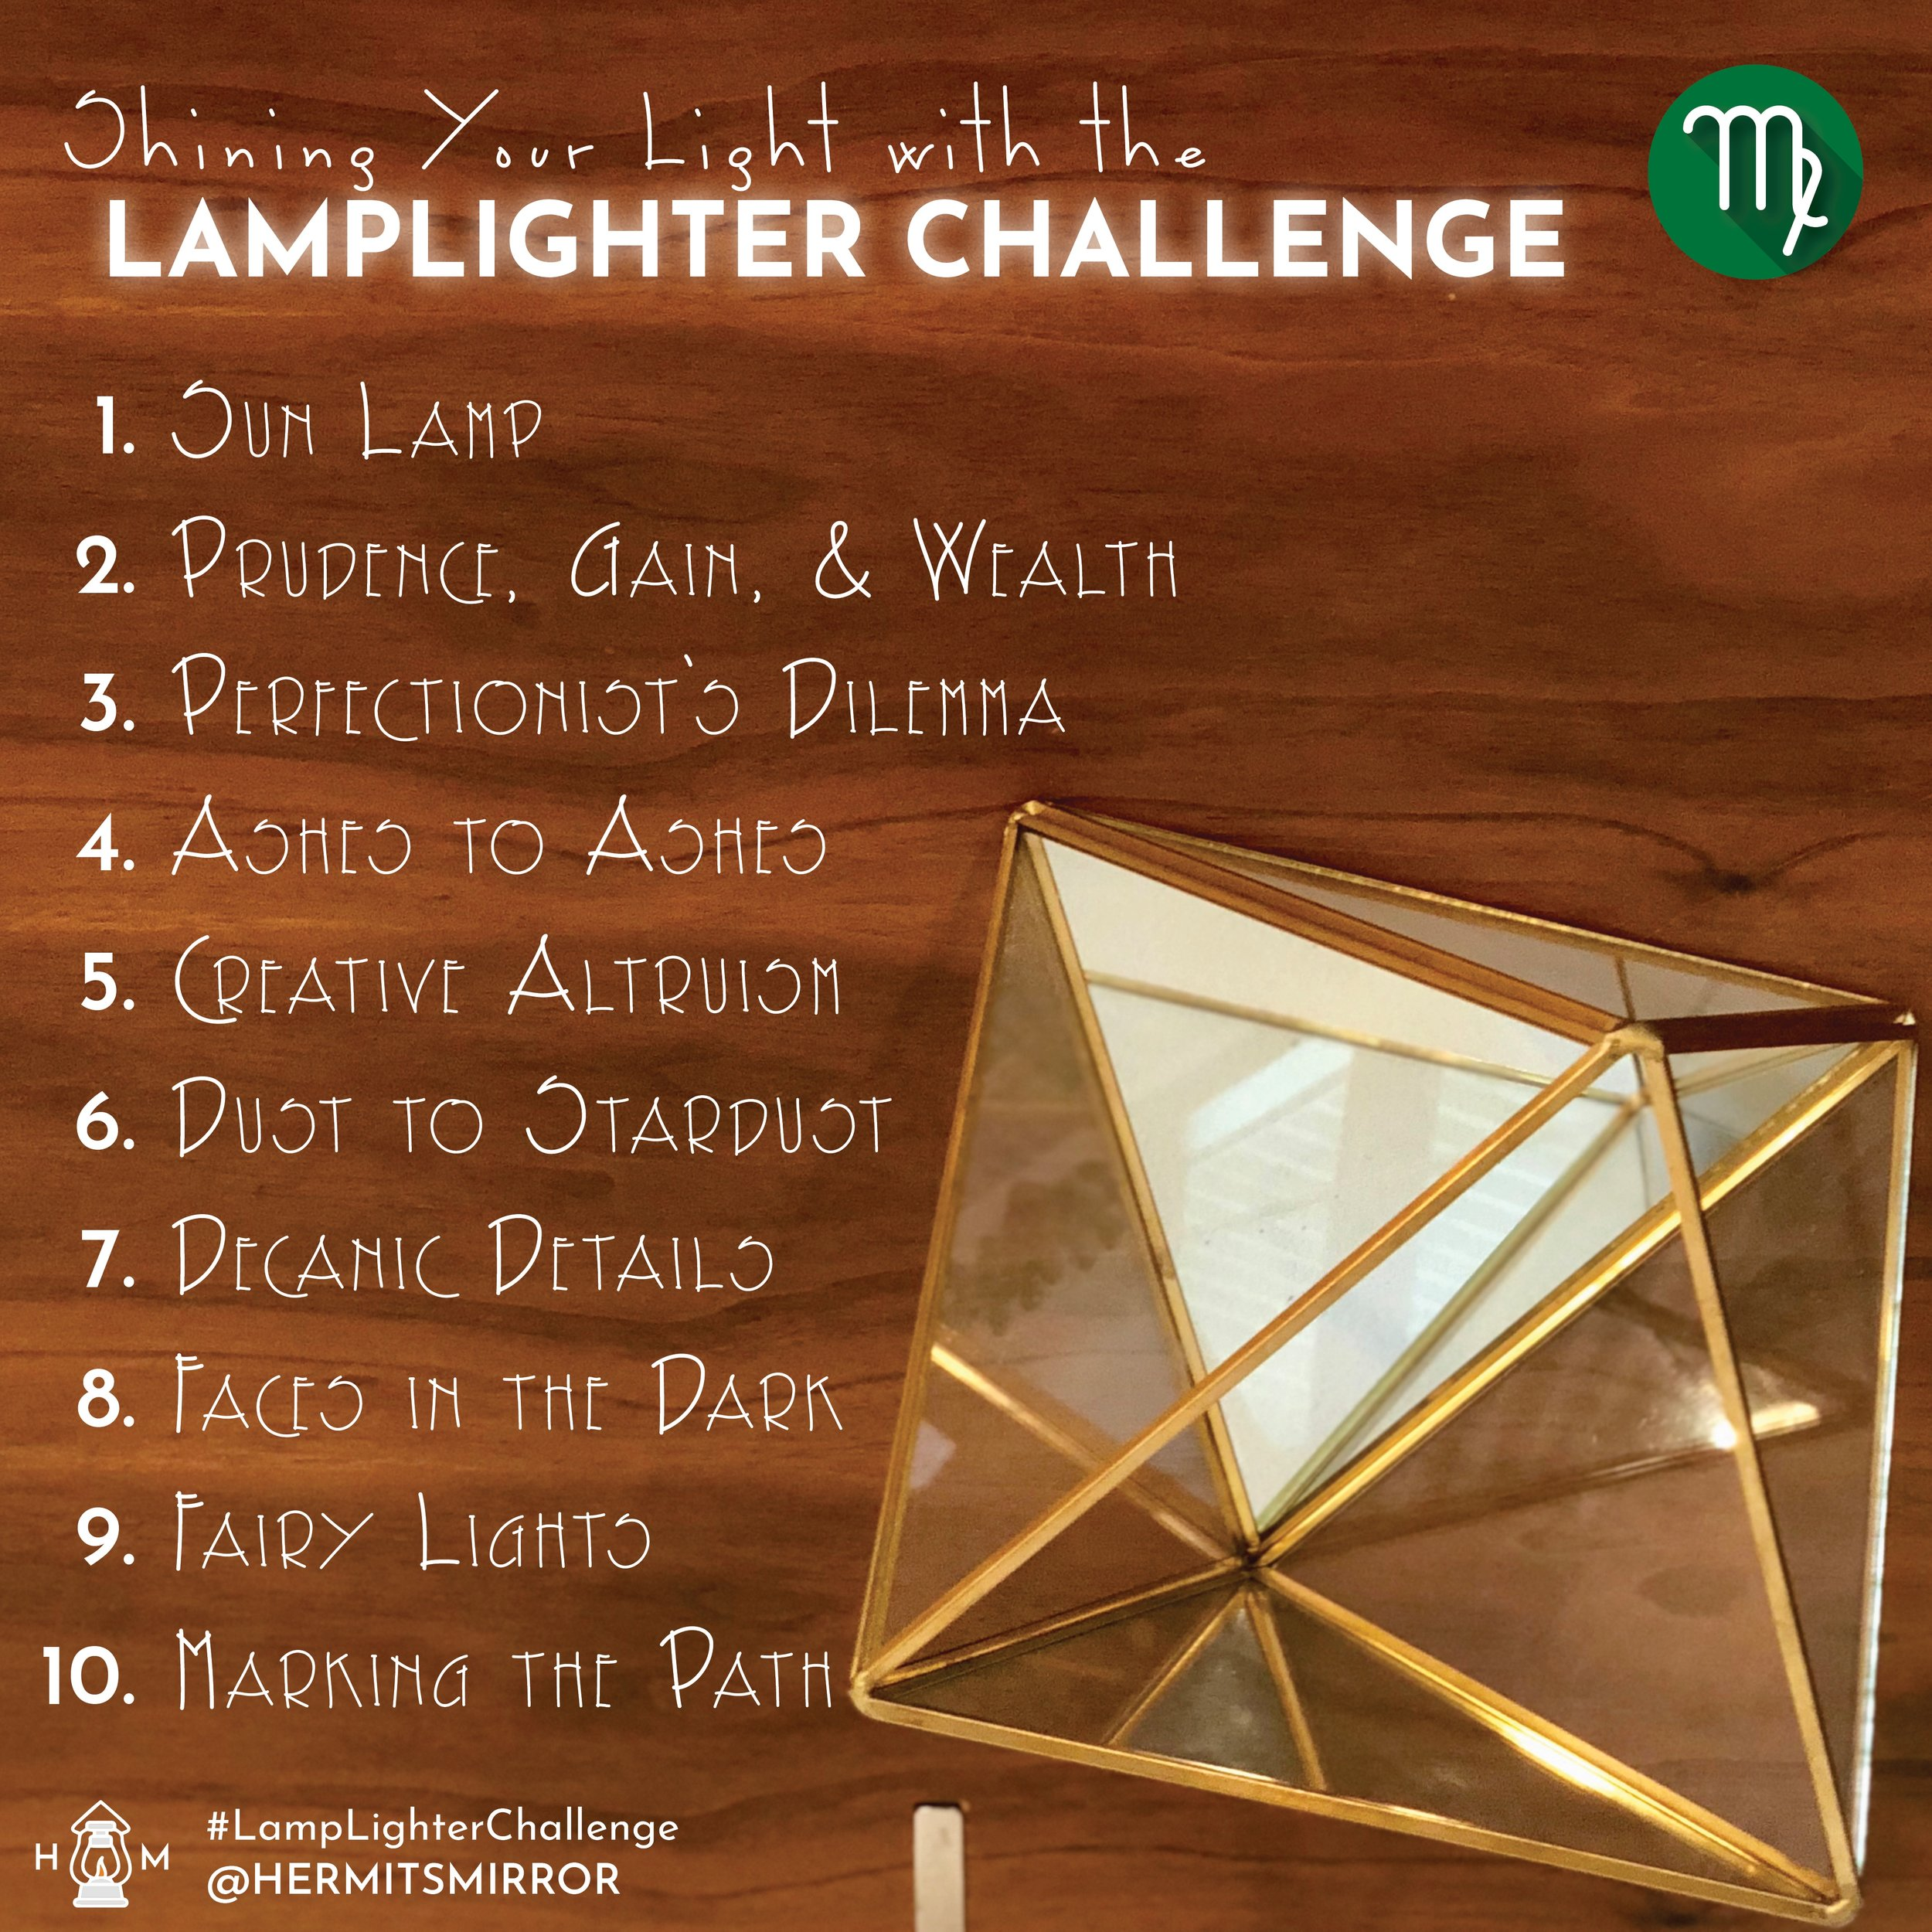 lamplighteroverview.jpeg